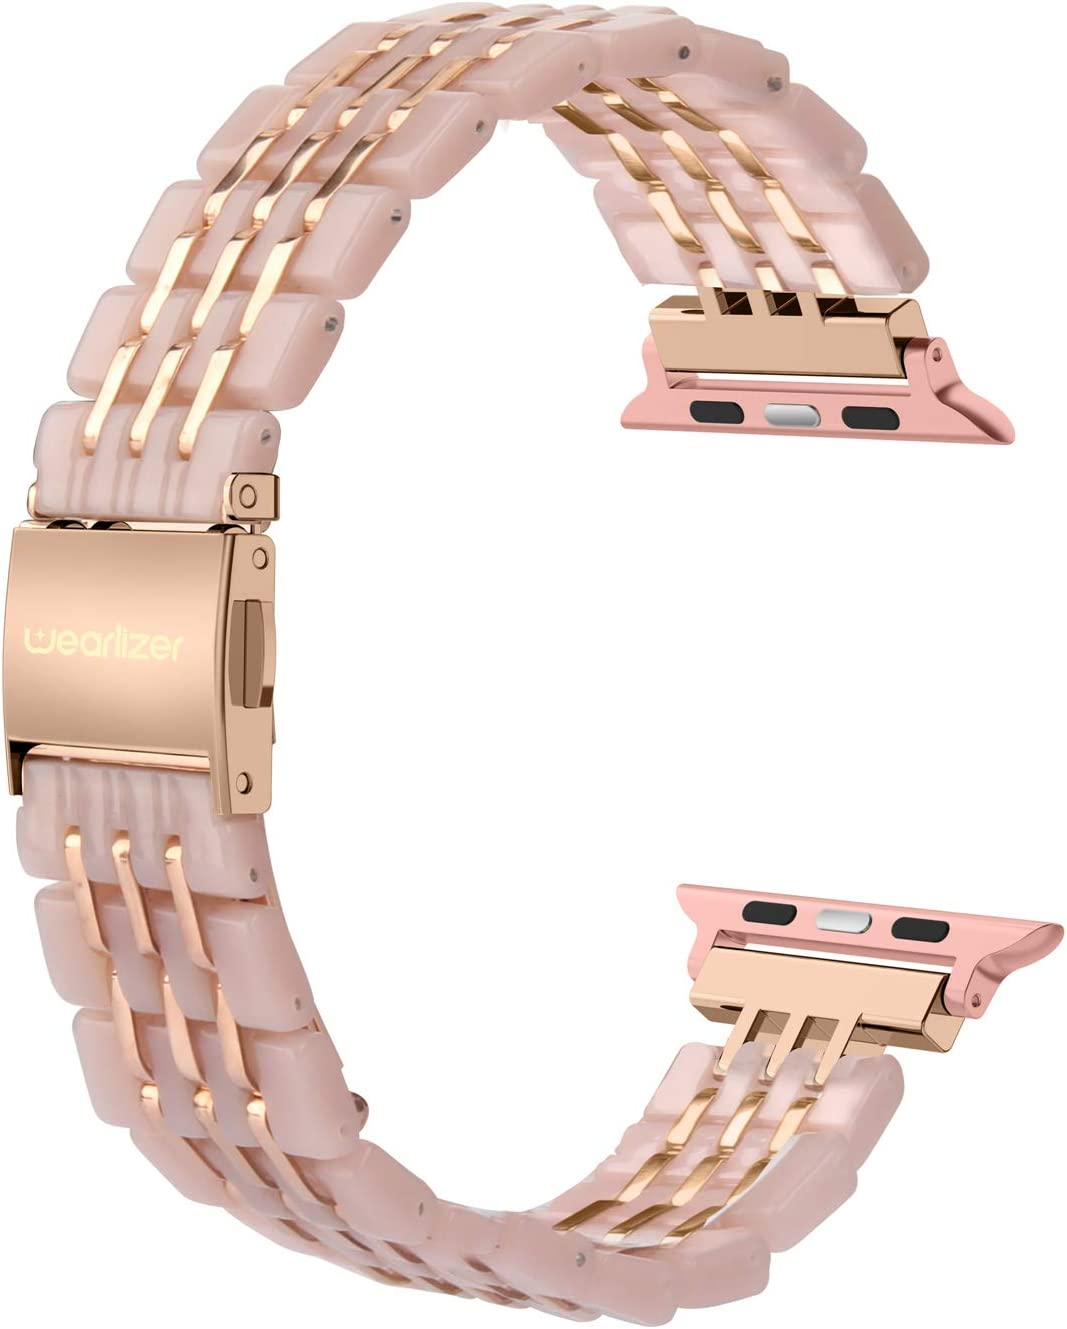 Wearlizer Compatible with Apple Watch Band 38mm 40mm Womens for iWatch SE Resin Unique Stainless Steel 3-line Strap Beauty Replacement Wristband Metal Bracelet Series 6 5 4 3 2 1-Deep Rose Gold+Pink